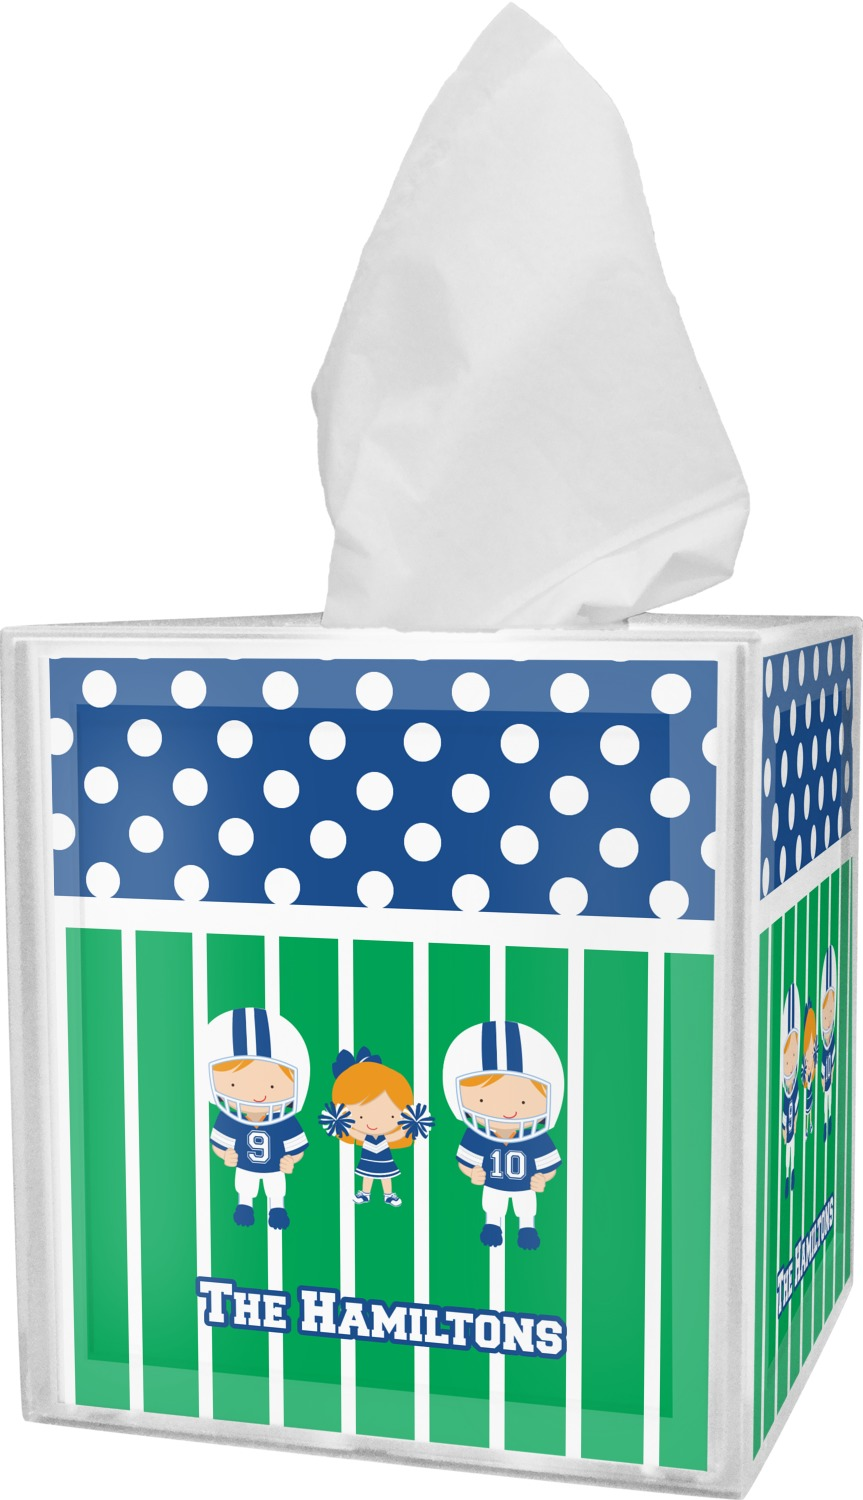 Football Bathroom Accessories Set Personalized